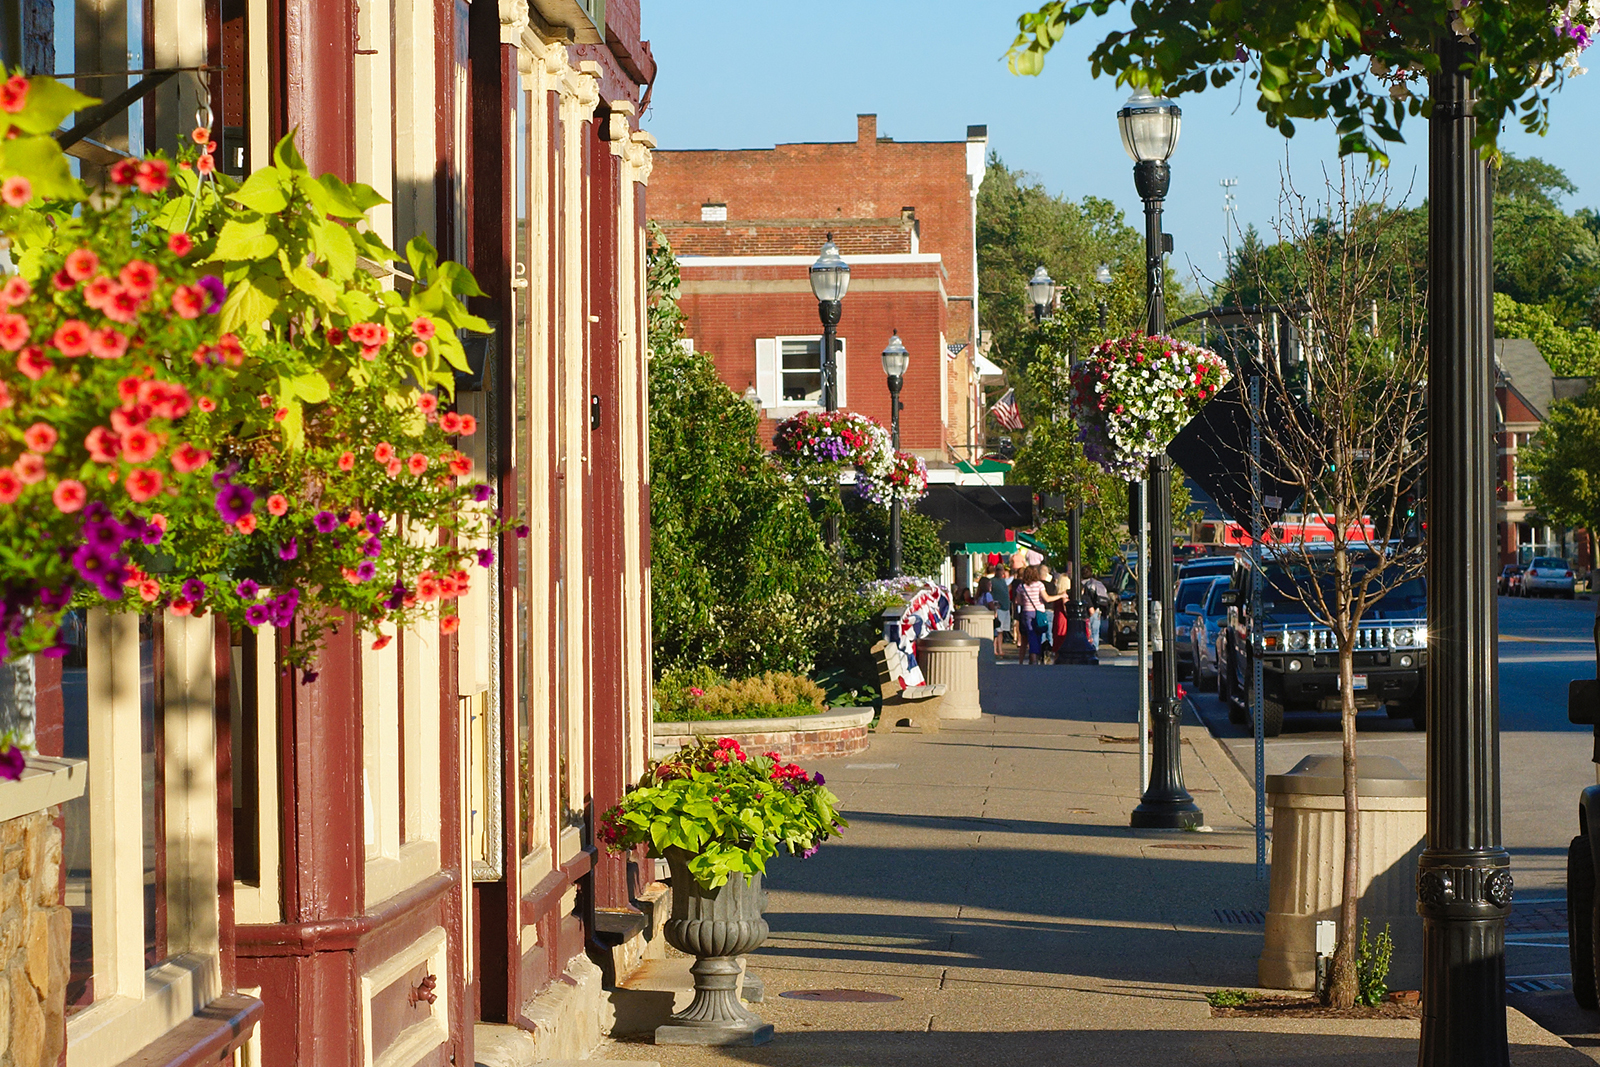 Bright sidewalk with store fronts and hanging flower baskets